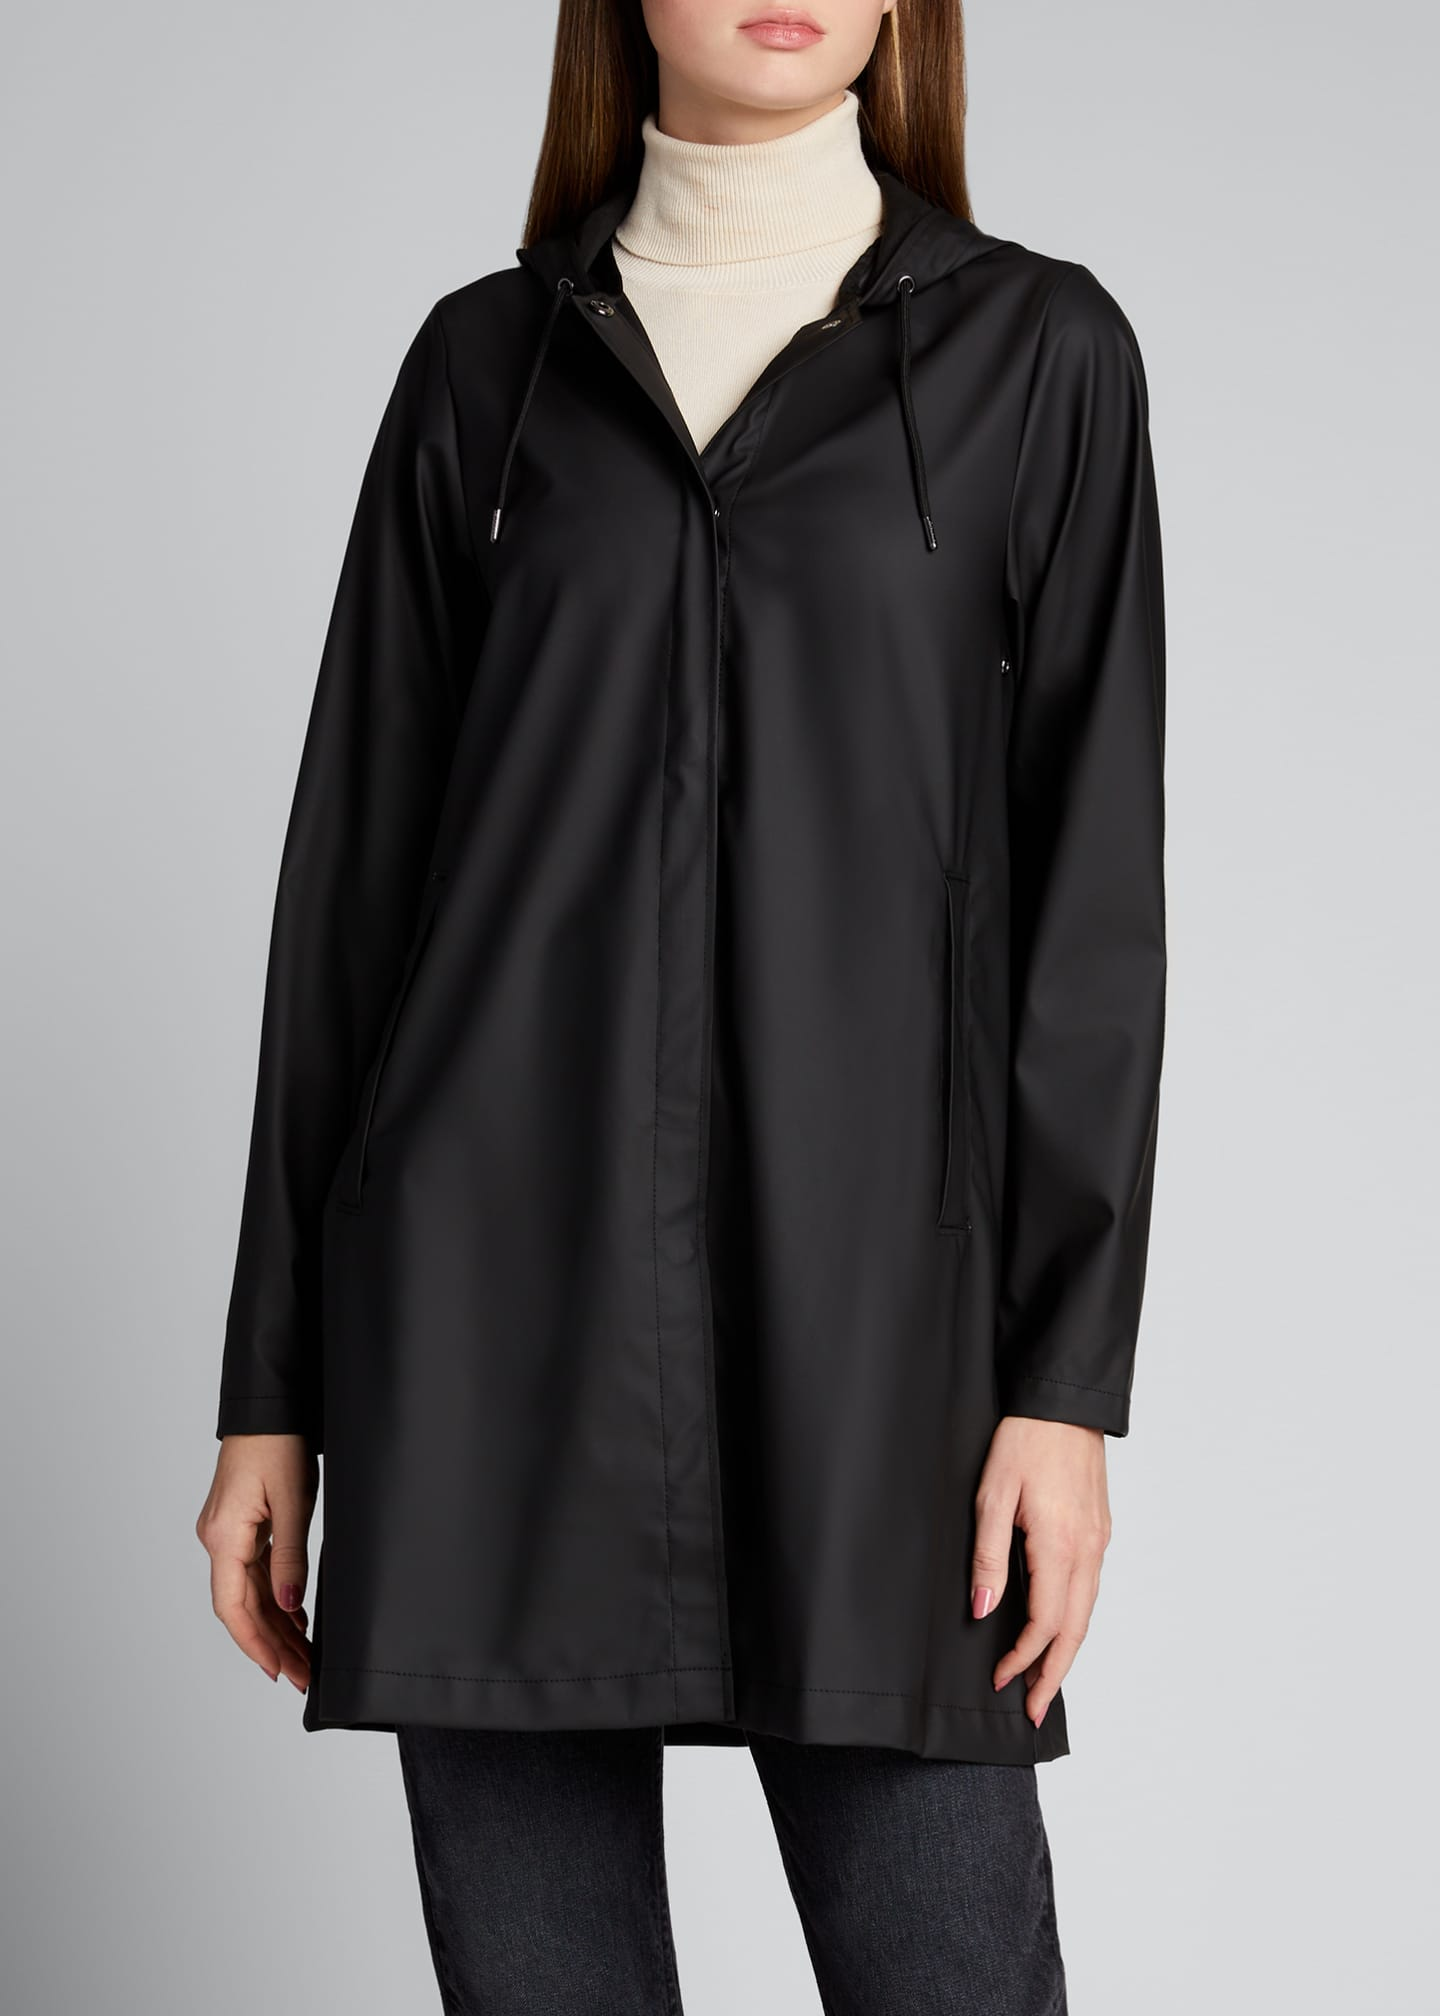 Image 3 of 5: Hooded A-Line Raincoat